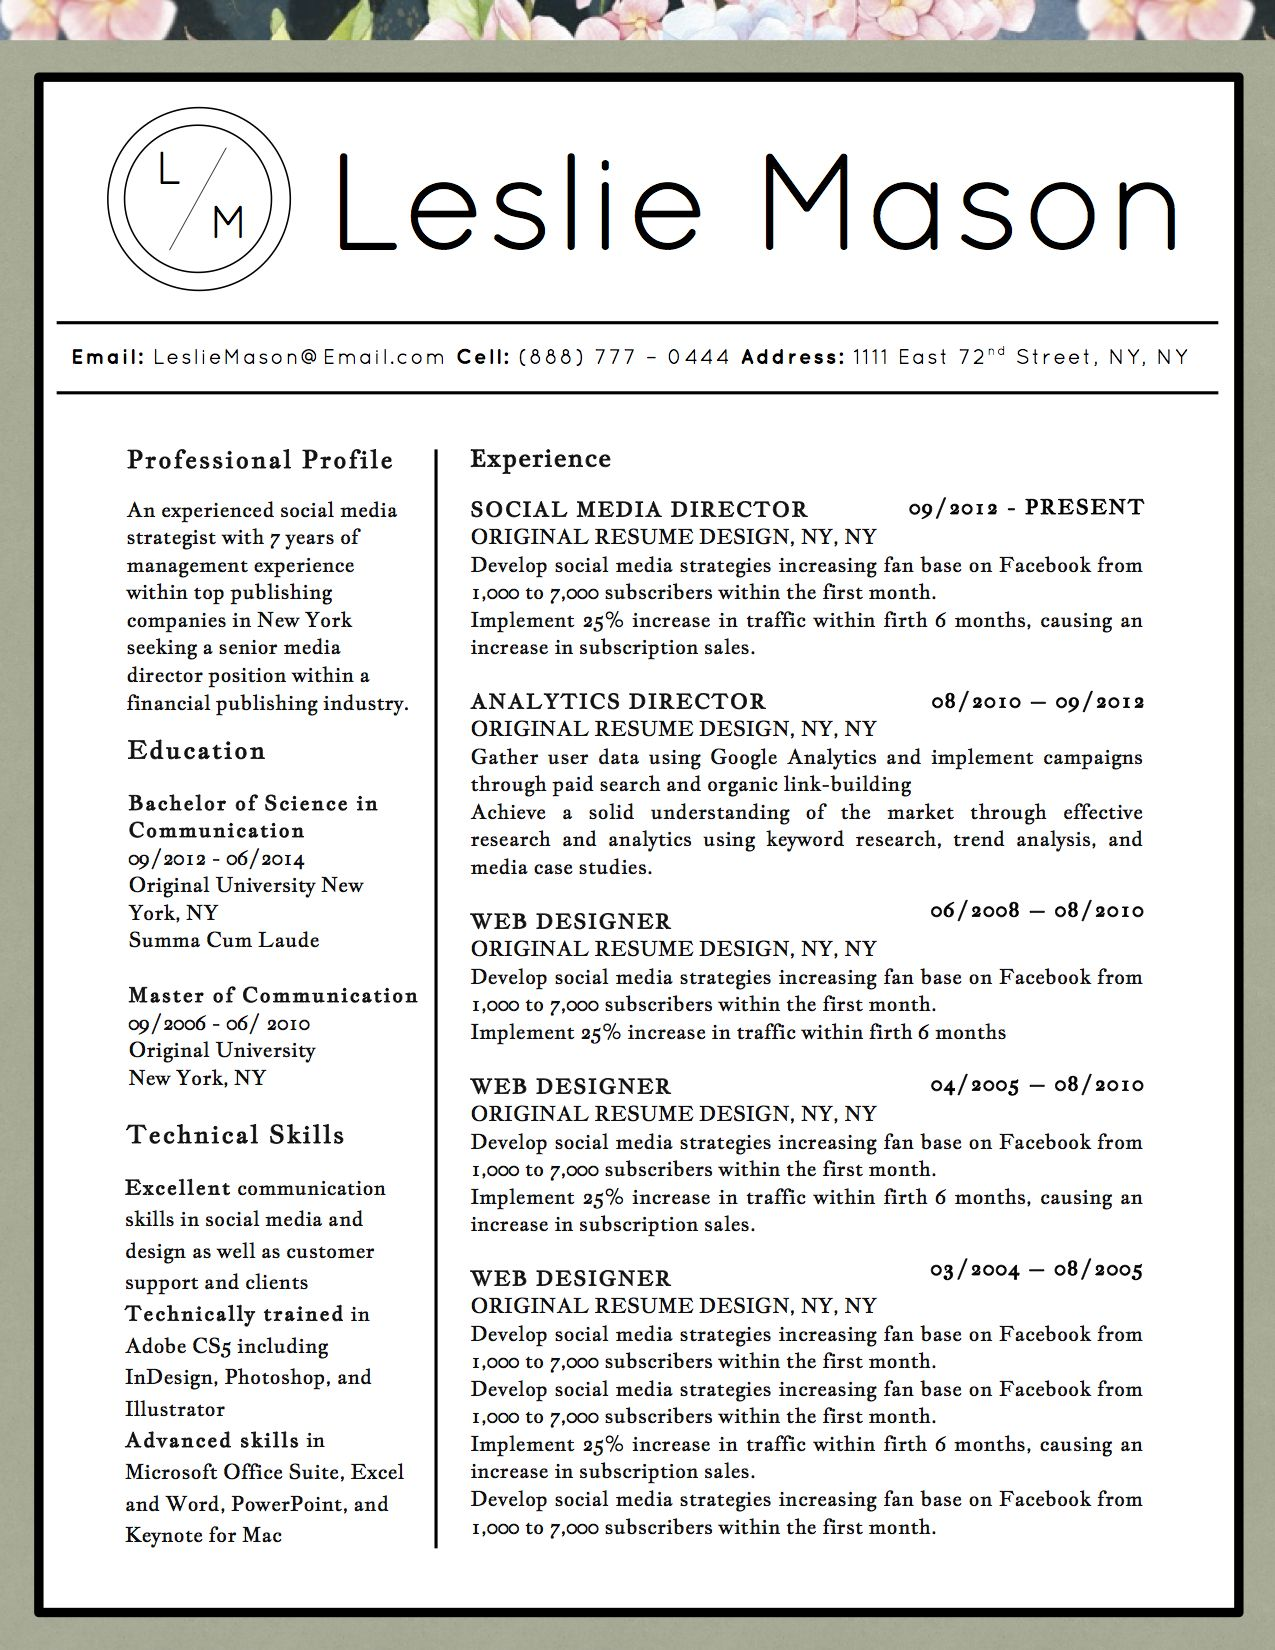 beautiful resume template for microsoft word 3 distinct beautiful resume template for microsoft word 3 distinct styles and matching cover letters